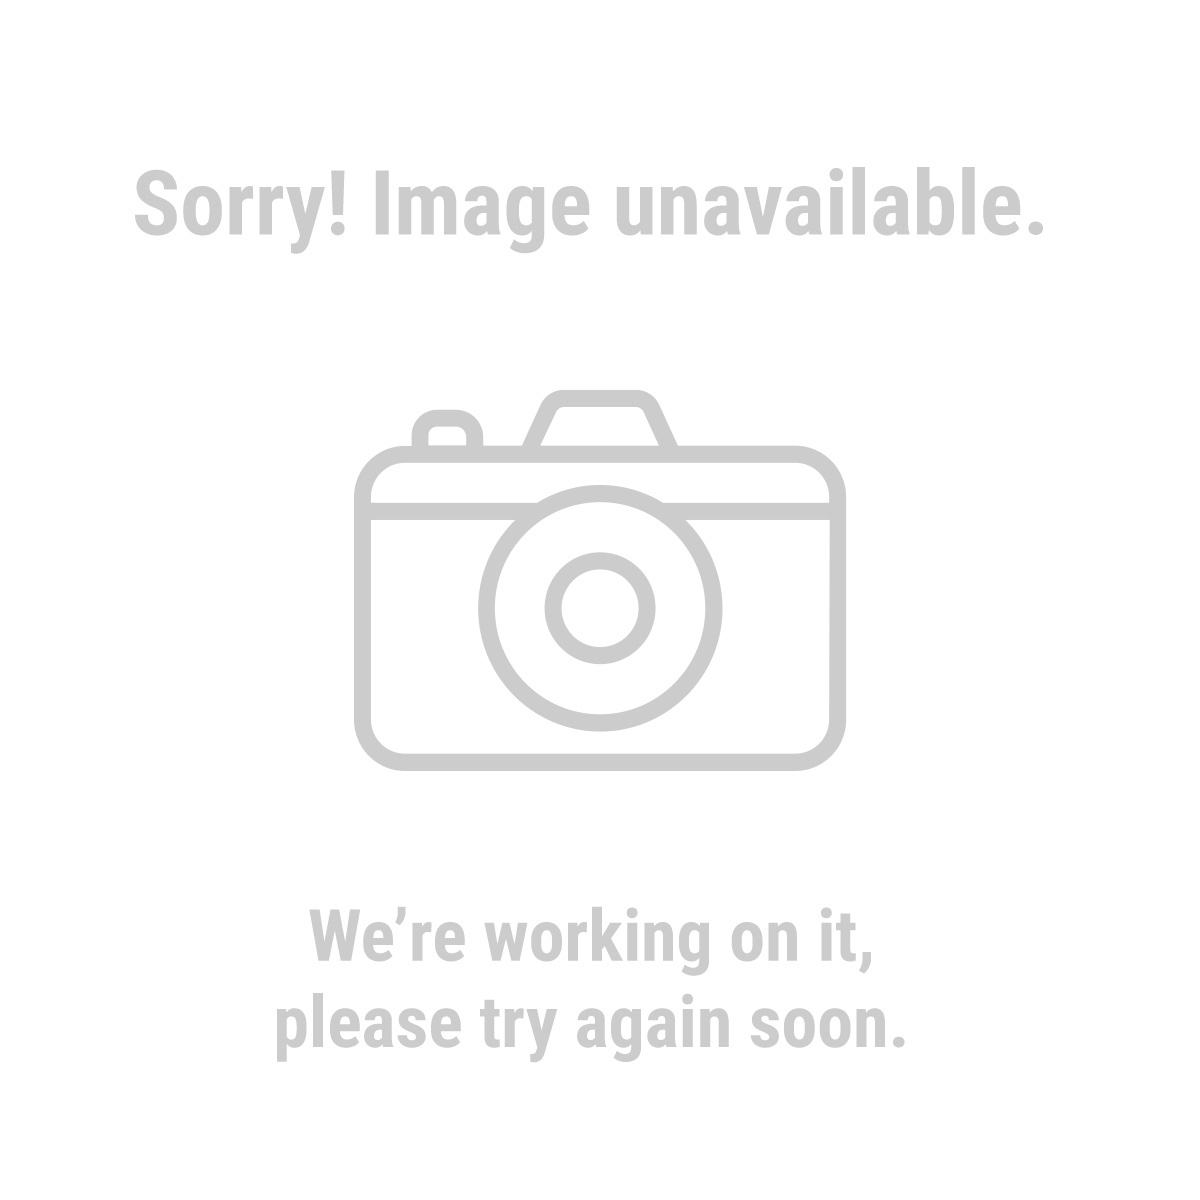 Haul-Master 543 8000 Lb. Cable Winch Puller